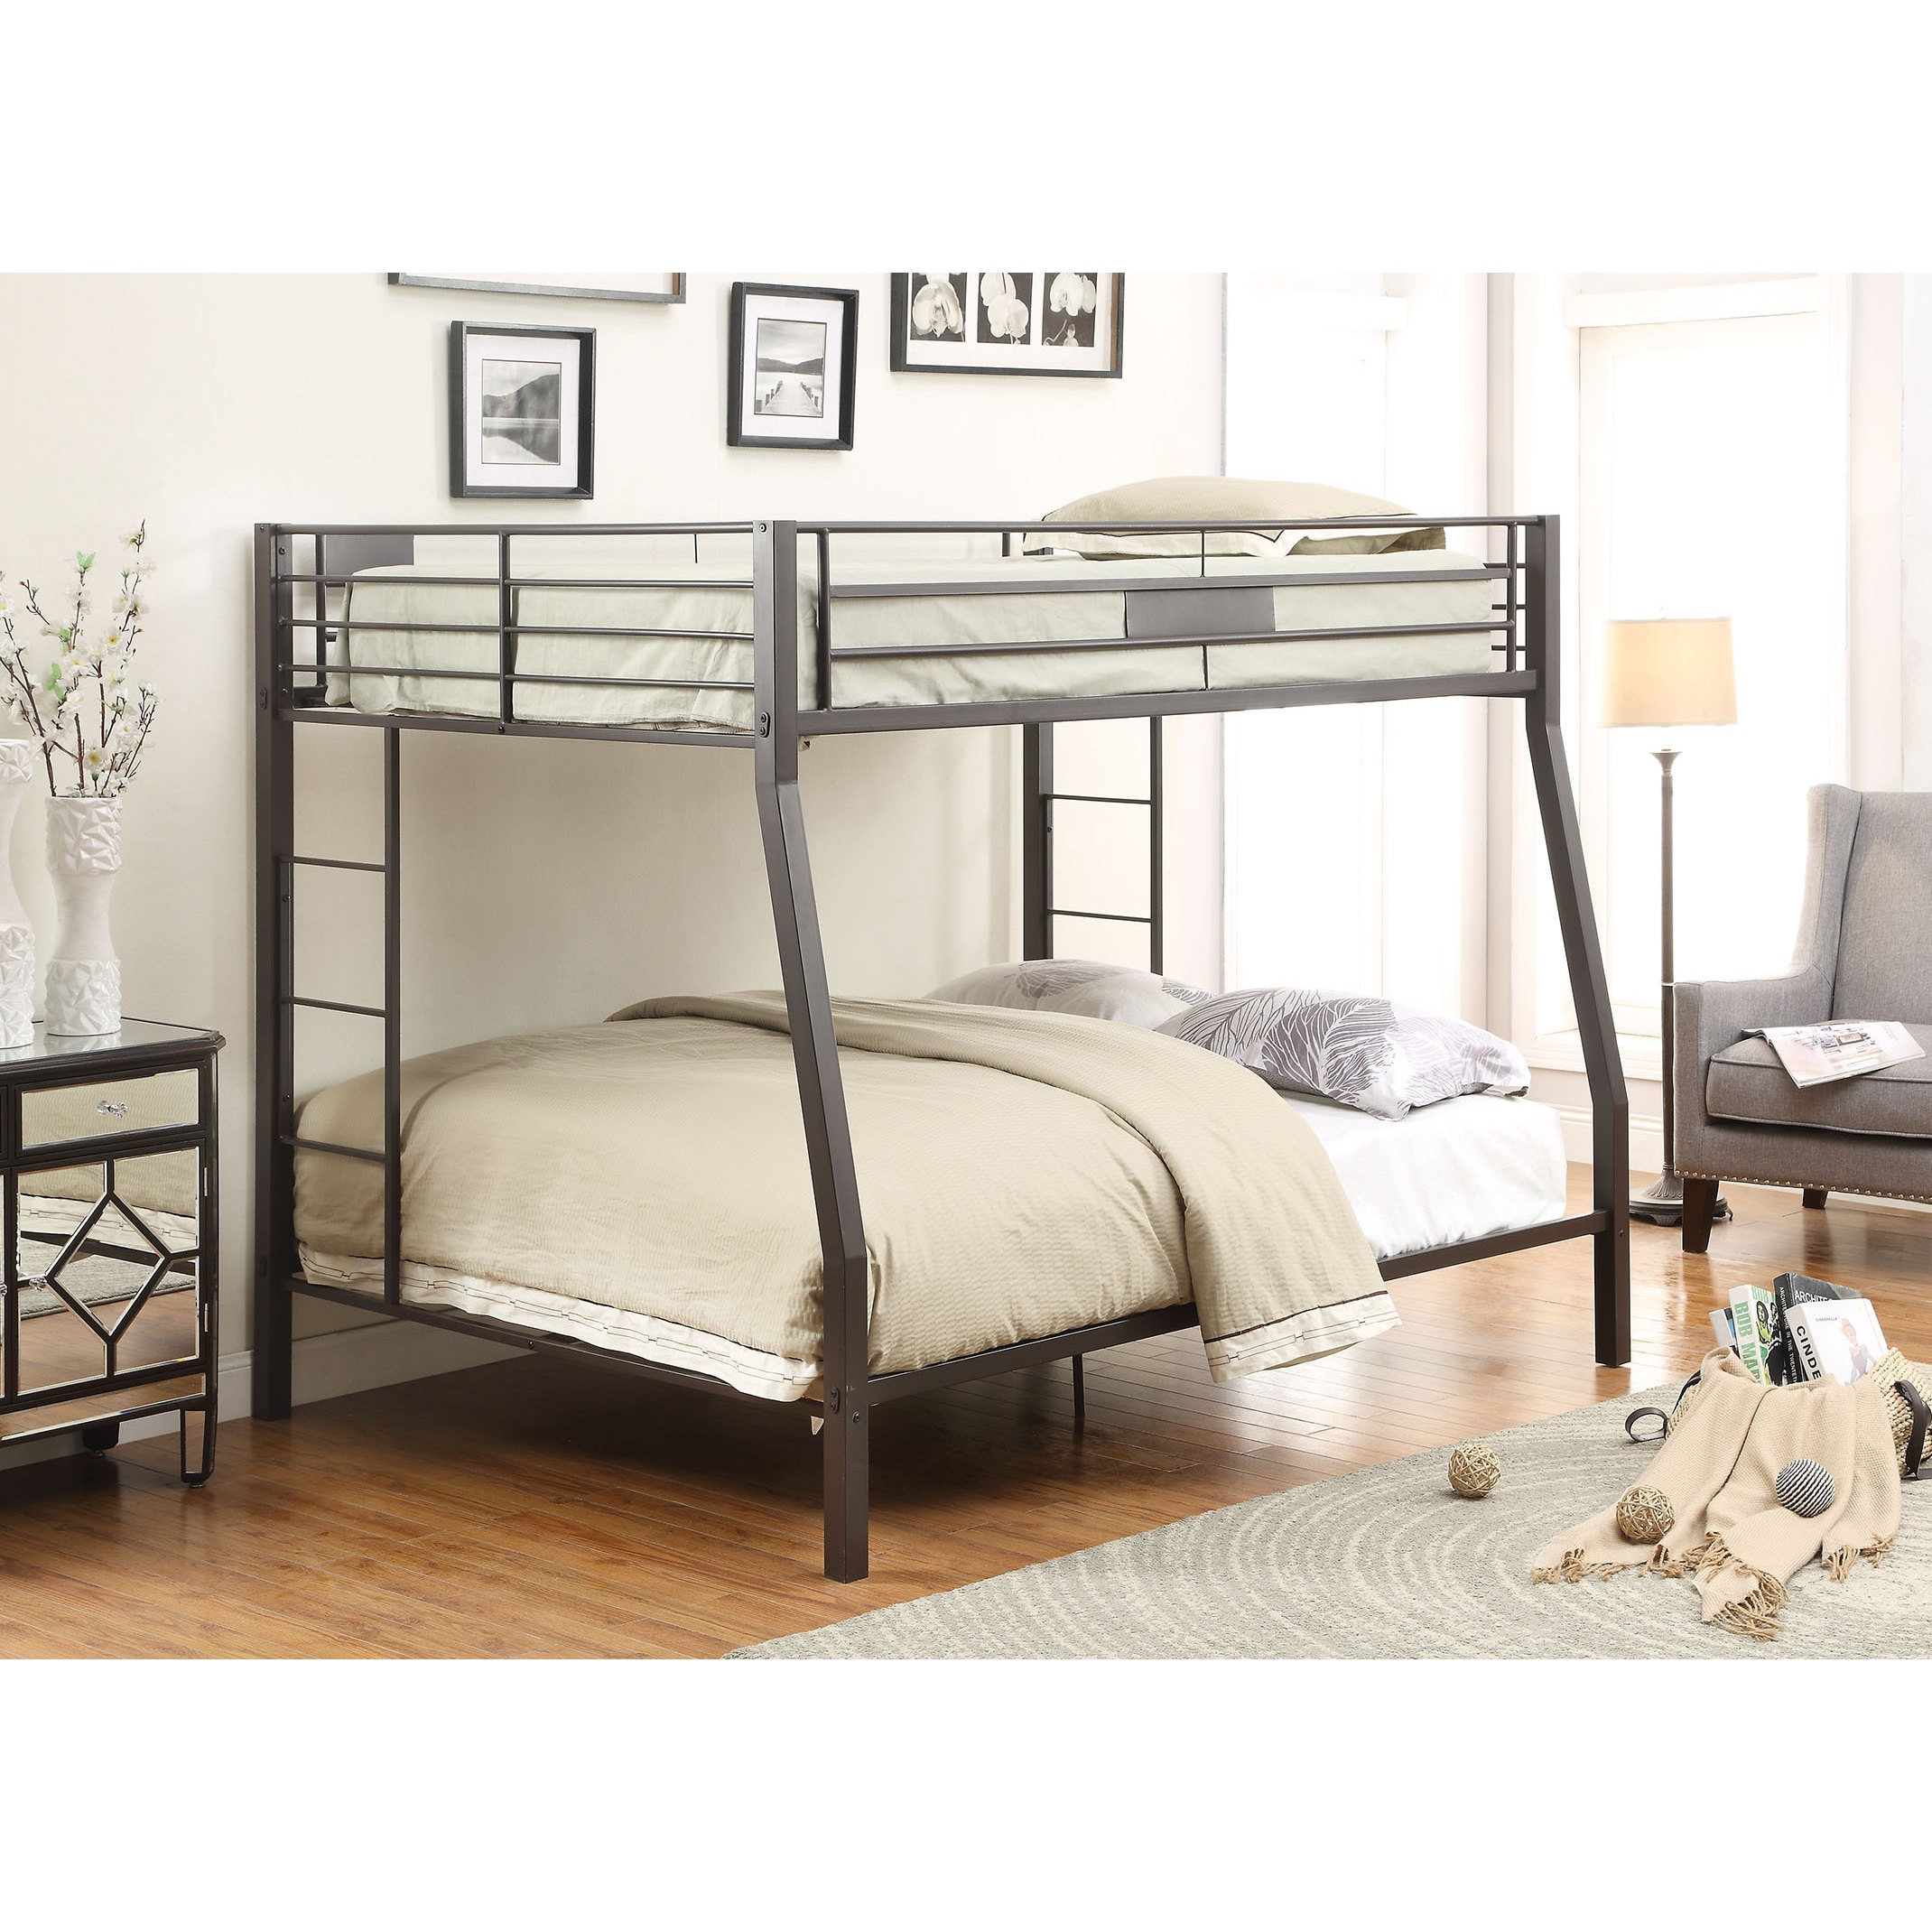 Shop Limbra Black Full / Queen Bunkbed   Free Shipping Today    Overstock.com   11600115